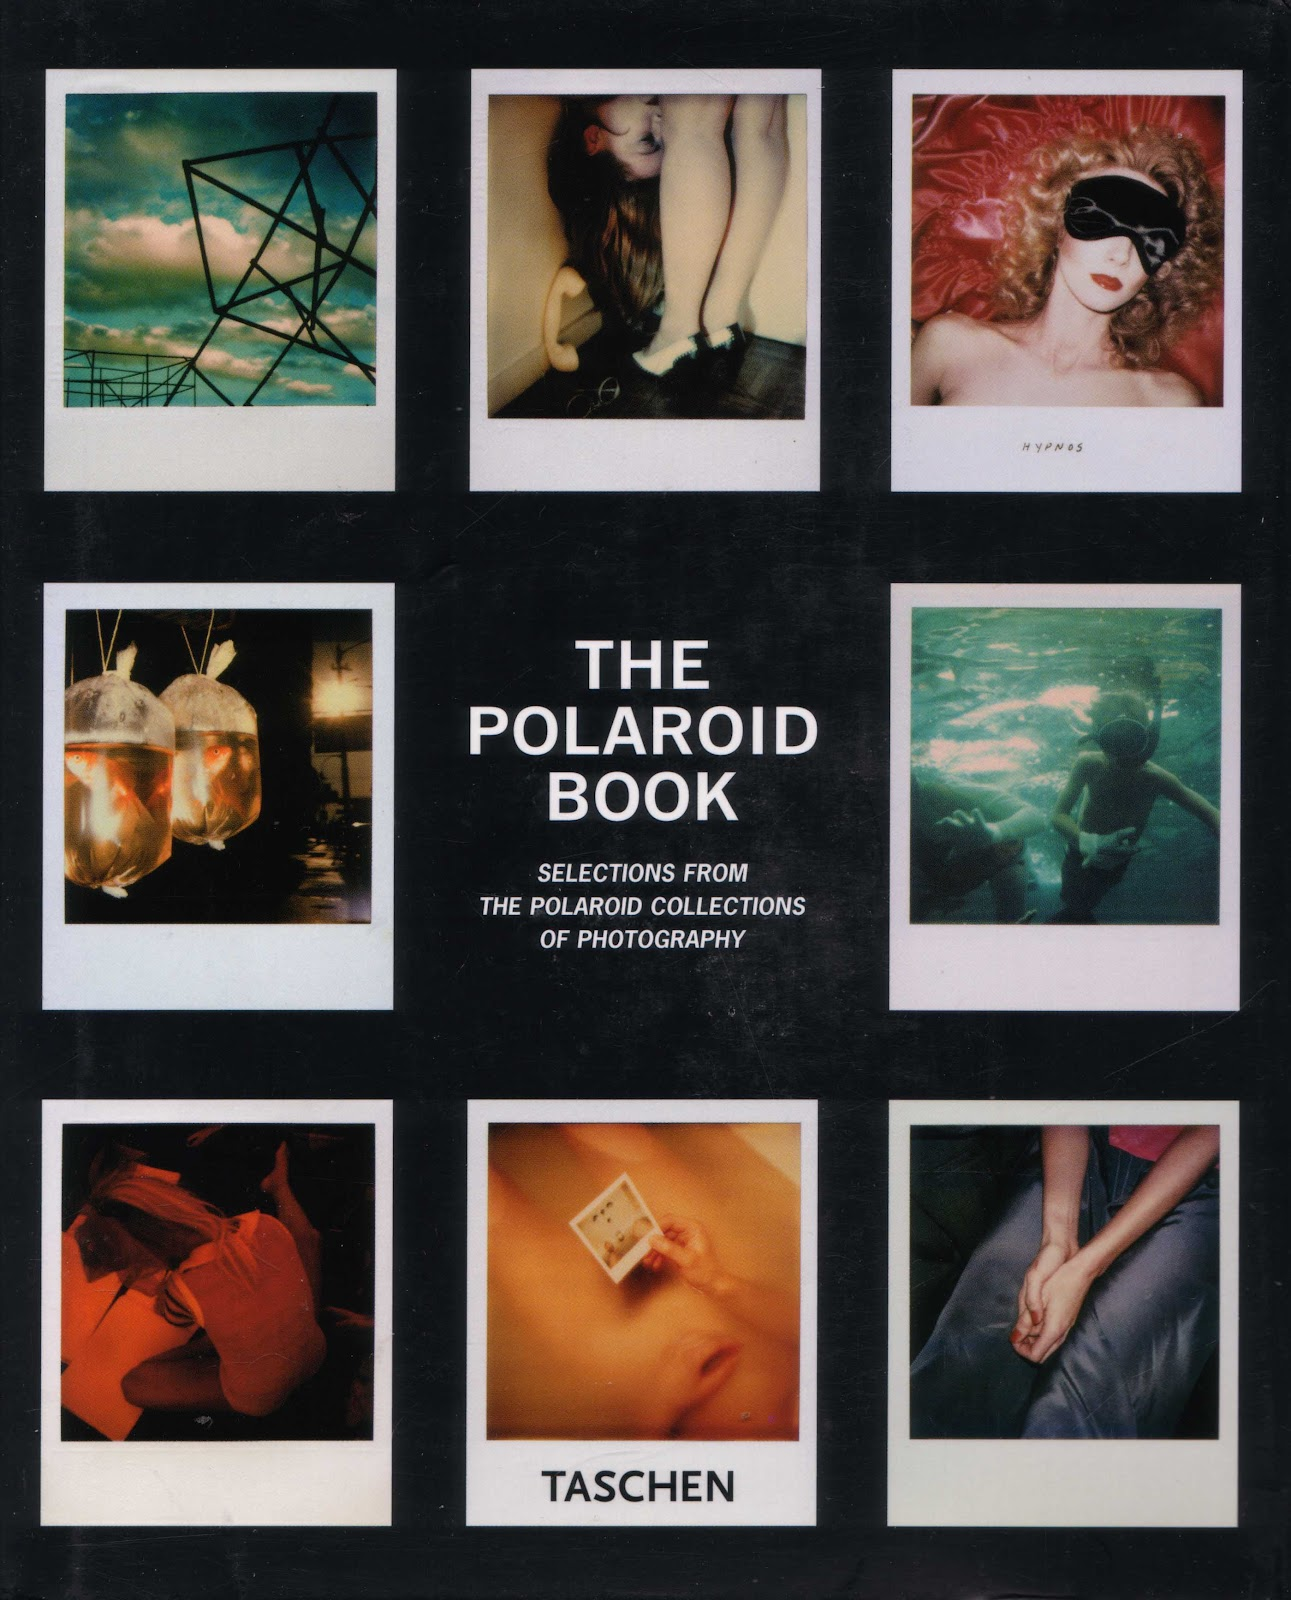 huc gabet the polaroid book selection from the polaroid the polaroid book selection from the polaroid collections of photography edited by steve crist essay by barbara hitchcock hardcover book published by